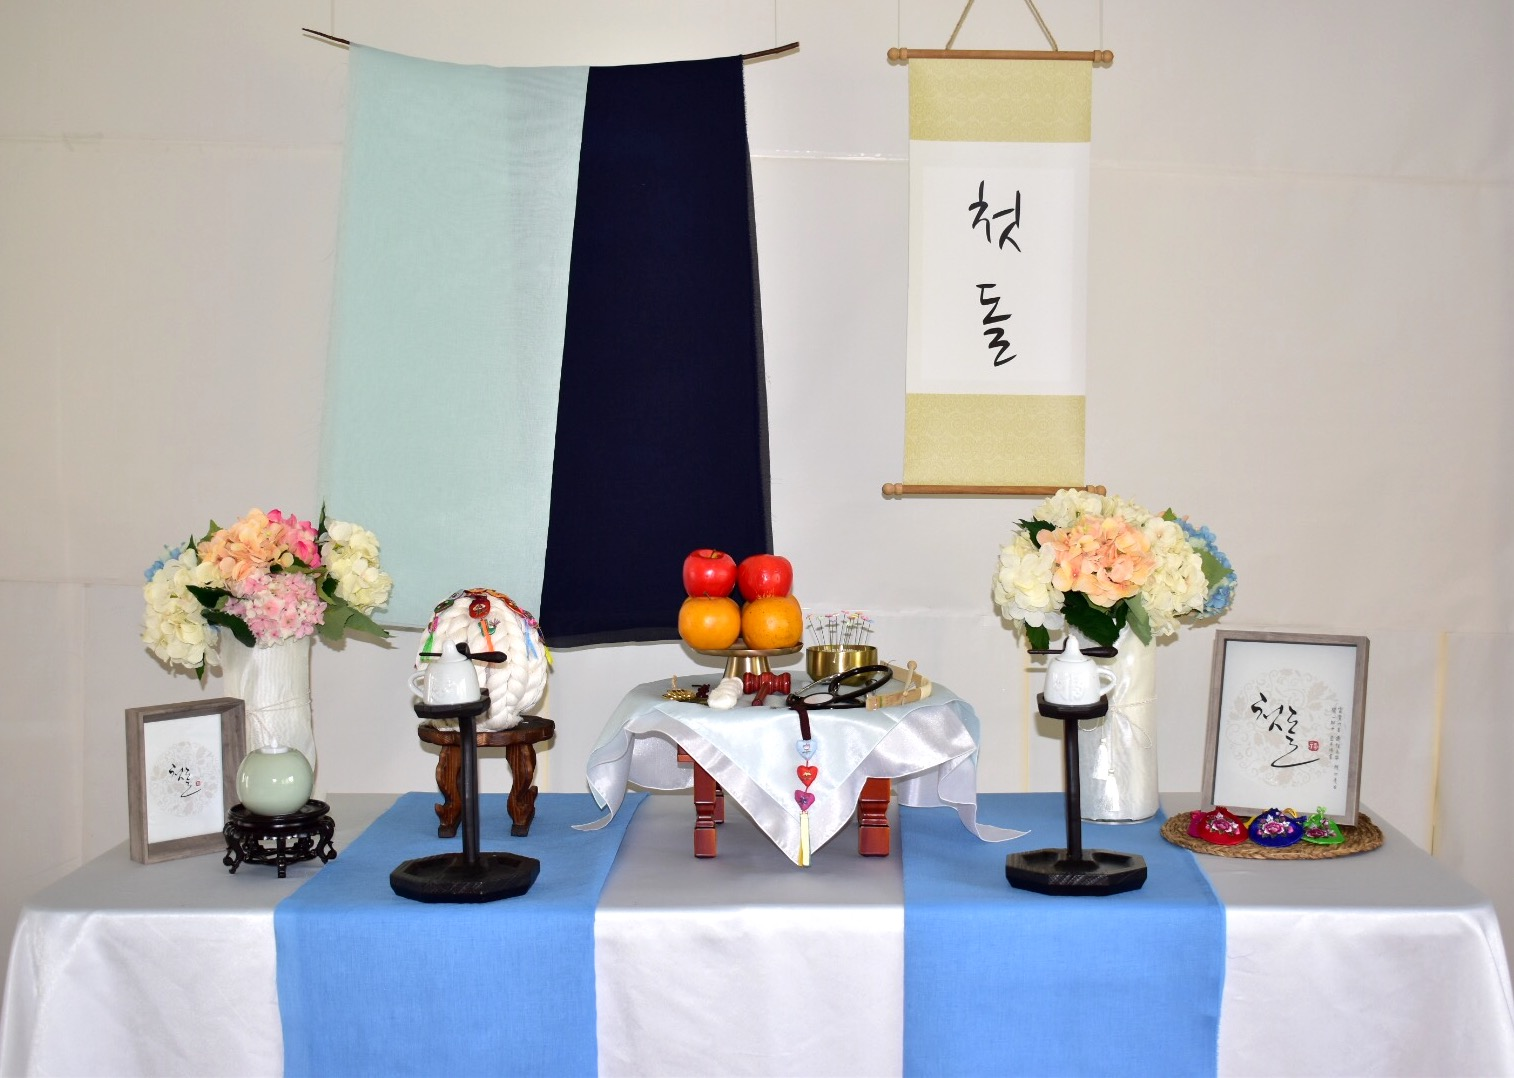 PETIT STYLE TABLE RENTAL: 하늘선비 첫돌 족자(Navy,babyblue BOard) - Included: Two tone backdrop, 1st Birthday hanging board, round wooden table, traditional tablecloth, traditional runner, small tablecloth, 2 kerosene lamps, 1 mini wooden square table, traditional candle holder, display apples, rice cakes, silk flowers and plastic vases, shil ta rae, traditional accessories are randomly picked, 2 picture frames, Doljabi Items (Pick 5 items- Ma-pae, coin, stethoscope, writing brush, thread, bow and arrow)** Mix &Match backdrops and runners (choose from traditional table)*** Pick up- Everything included in the picture except display rice cakes, display fruits, brass plates.* Out of state - mini wooden table, display rice cakes, apples are not included. (optional). All accessories are randomly picked.*Shipping fee will apply. Fees might vary depending on location.상품구성: 투톤 행인 러너, 족자, 고급, 한복 원단 러너,상보, 호롱불 촛대 2개, 호롱불 2개,전통 사각 소반 1개, 전통 촛대 1개, 모형 사과, 백설기, 꽃과 플라스틱병 2개, 플라스틱 꽃병 2개, 상화, 실타래, 전통 장식품들 랜덤, 액자 2개, 돌잡이 용품(5개 선택 - 활, 실, 엽전, 마패,붓, 청진기)** Traditional Table 에서 현수막, 러너 Mix & Match 하실수 있습니다.* Pick up- 사진에 모든 물품 포함되지만 모형떡, 과일, 유기그릇은 포함되지 않습니다. 전통 소품들은 랜덤입니다.* 타주시- 깨지지 않은 소품들로 나갑니다. 유기그릇, 개다리 소반은 포함되지 않으며, 모형 과일, 떡은 옵션입니다. 전통 소품들은 랜덤입니다.* 배송시 배송비는 추가이며, 지역따라 배송비가 다를수 있습니다.